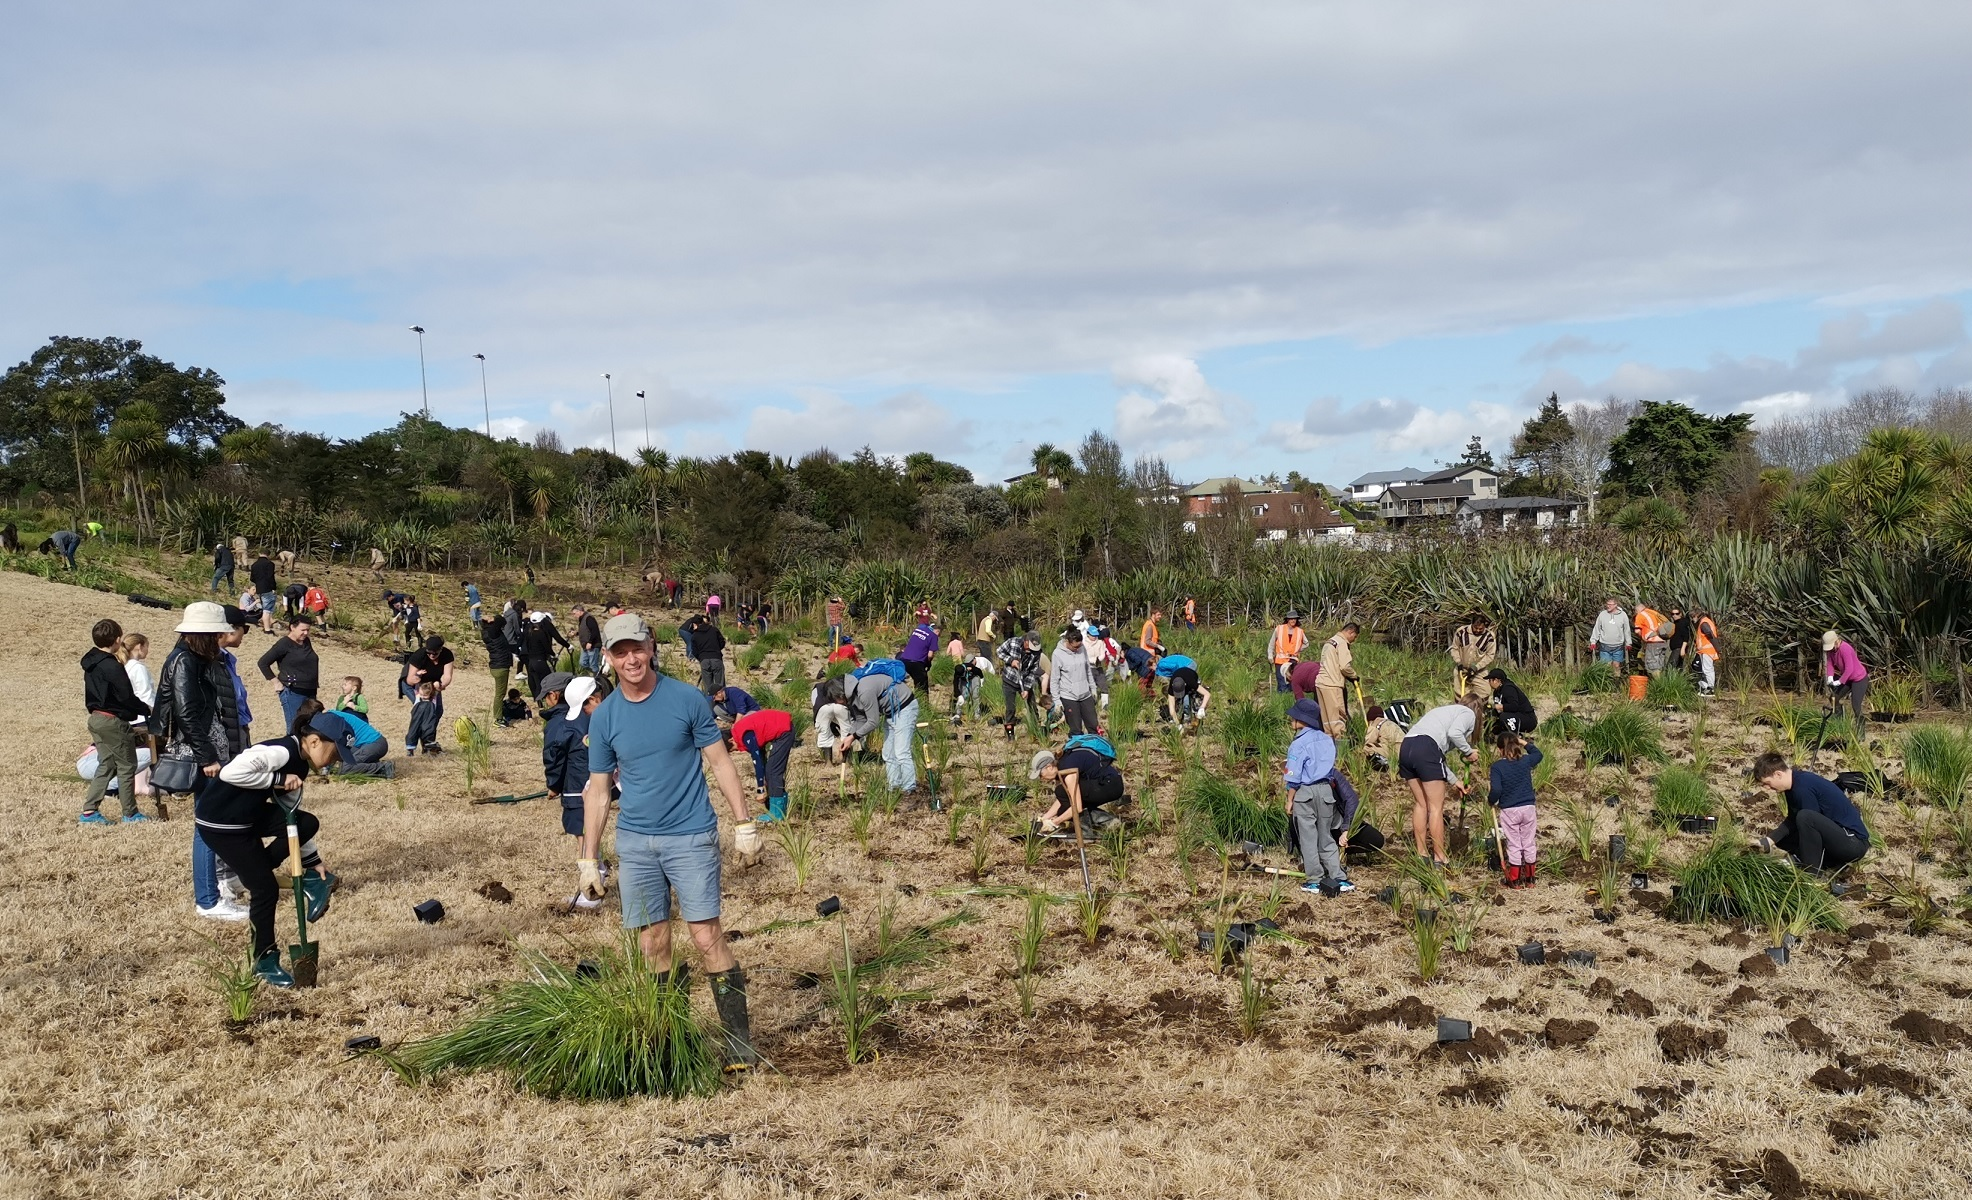 Community planting day at Ōhuiarangi / Pigeon Mountain, July 2019. Credit Tūpuna Maunga Authority.